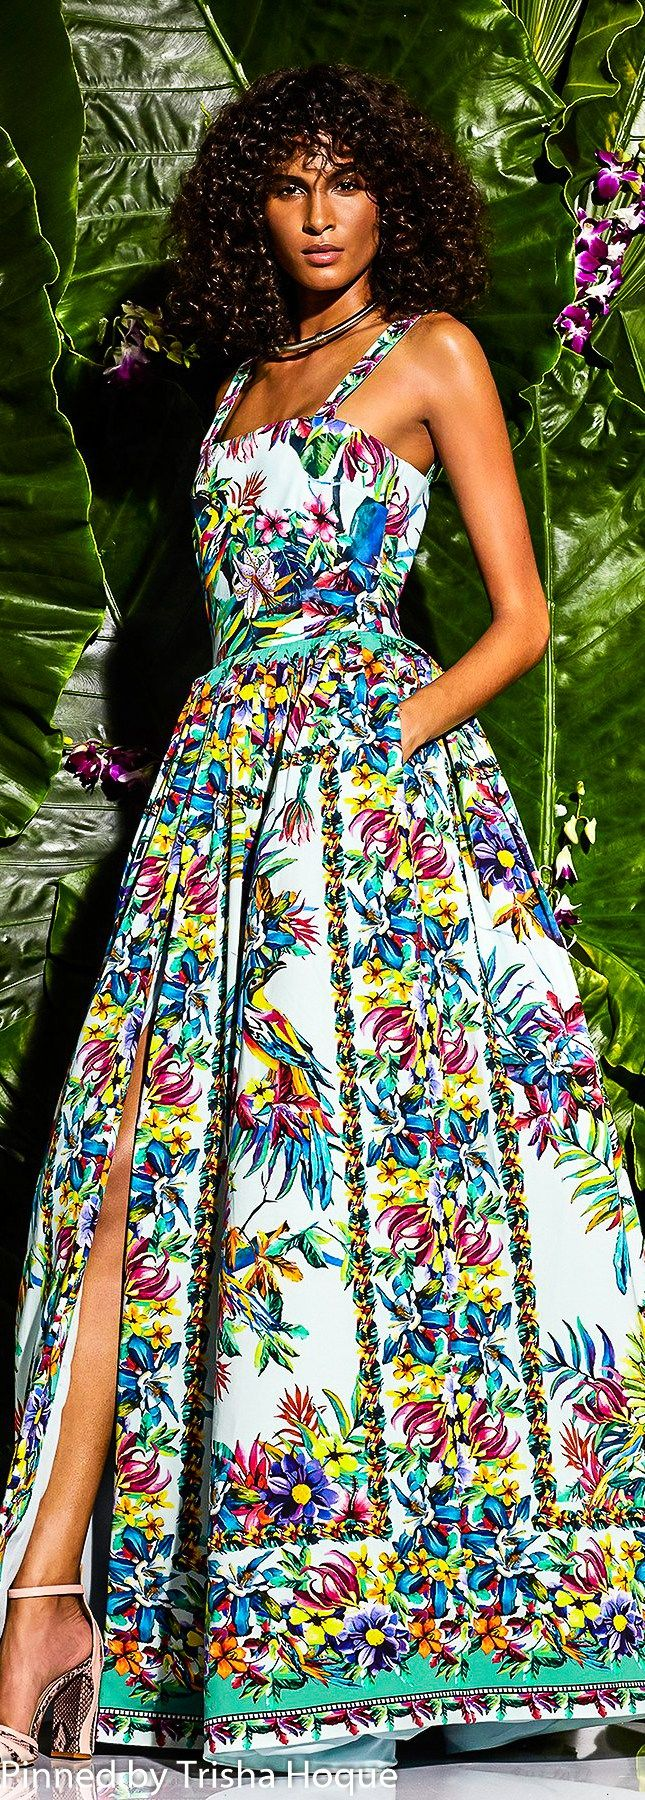 best goddess images on pinterest evening gowns high fashion